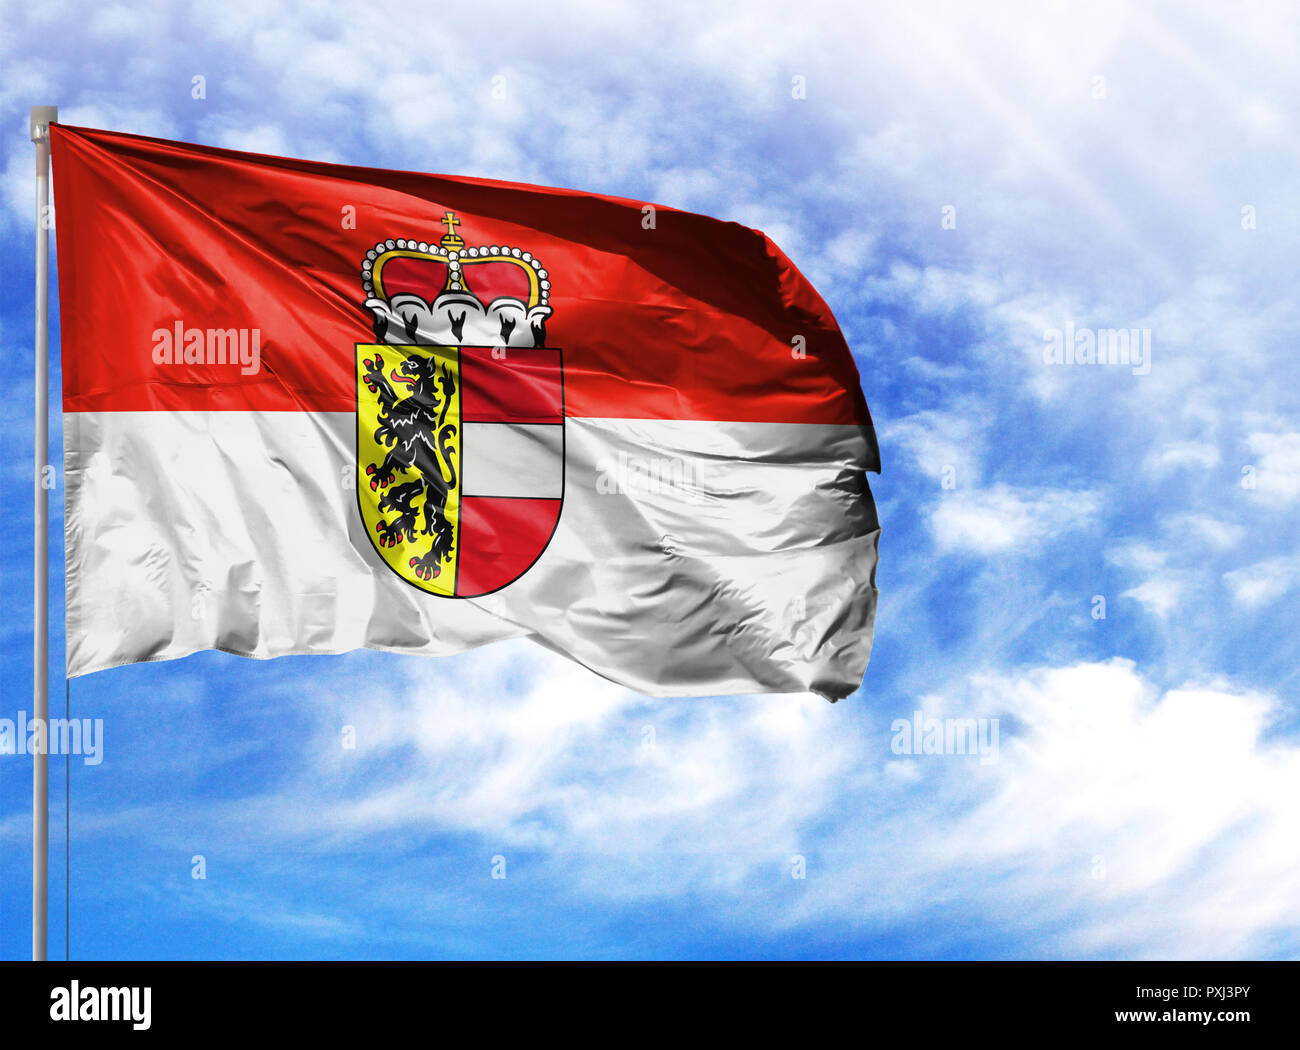 National flag of Salzburg on a flagpole in front of blue sky. - Stock Image